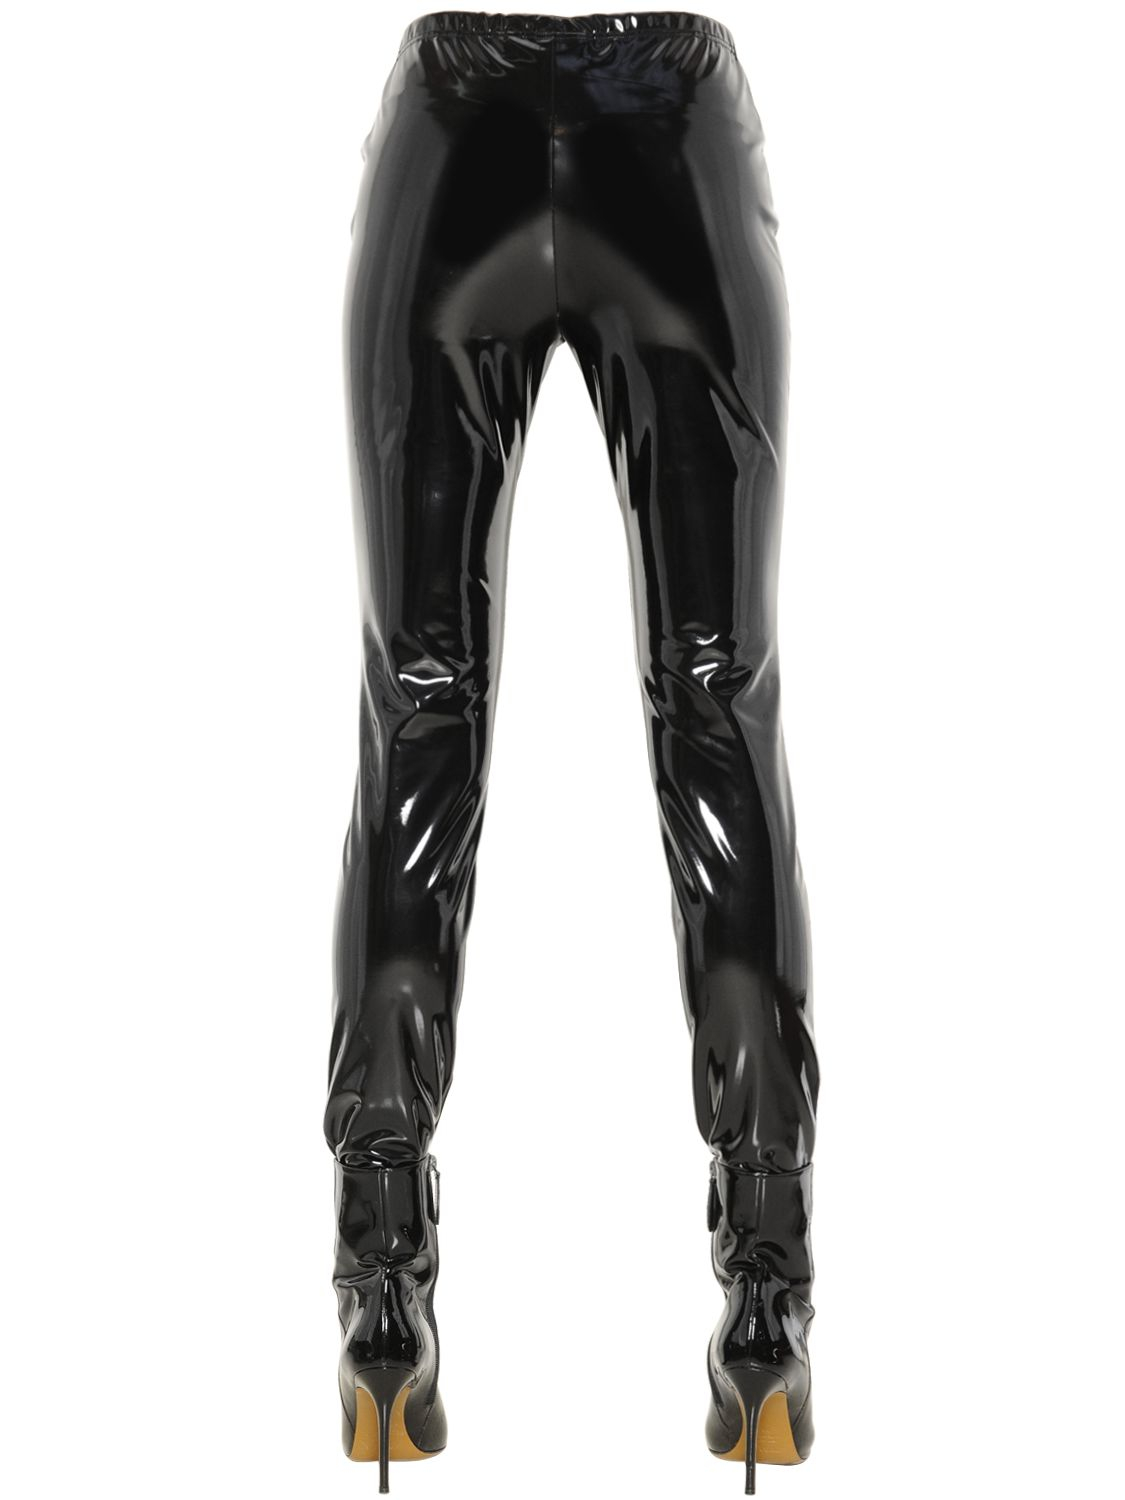 Louis Vuitton Made In France >> Lyst - Wanda Nylon Stretch Vinyl Leggings in Black